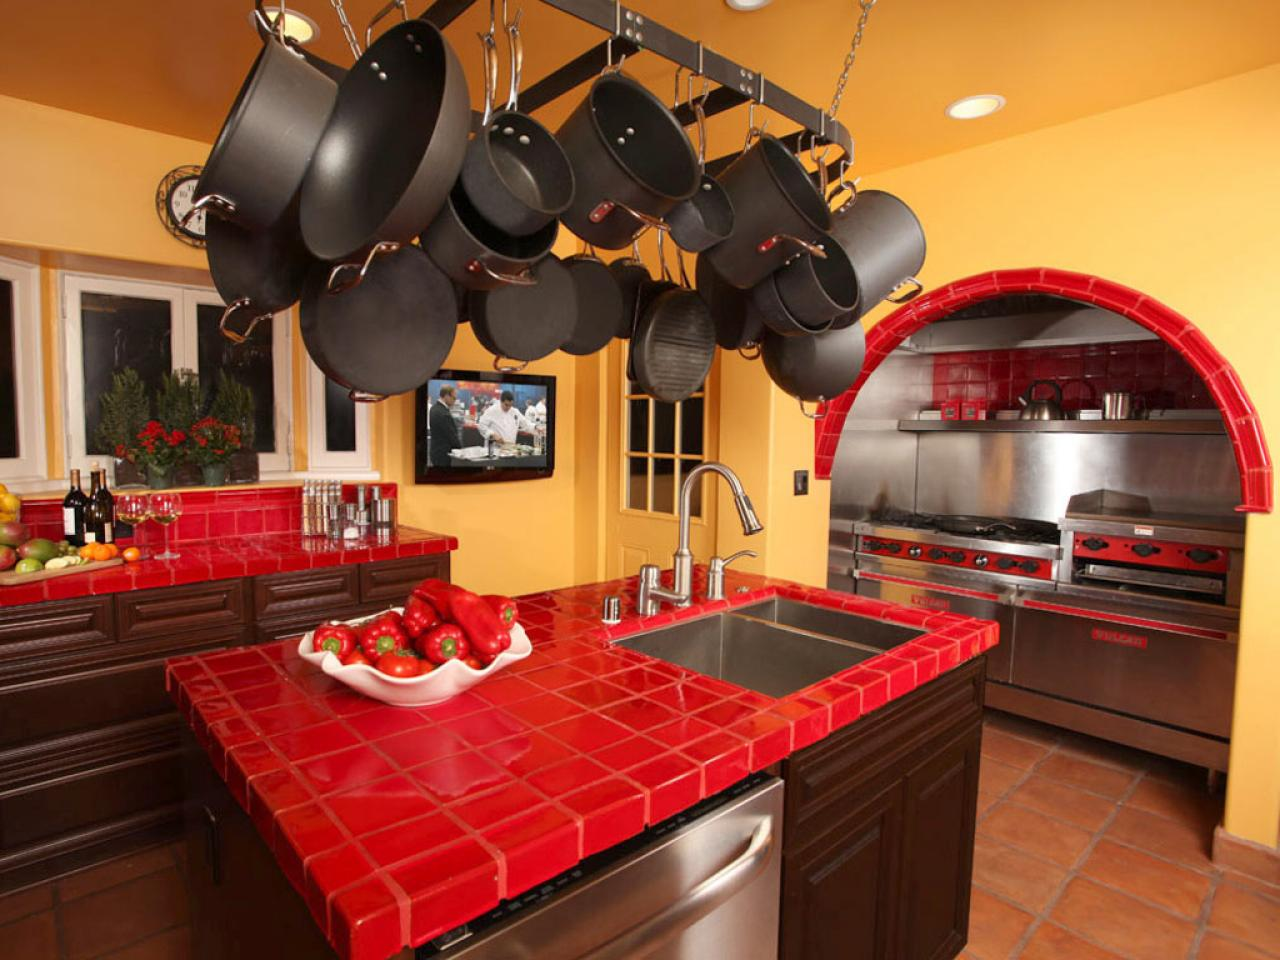 Tile Kitchen Countertops Tile Kitchen Countertops Pictures Ideas From Hgtv Hgtv